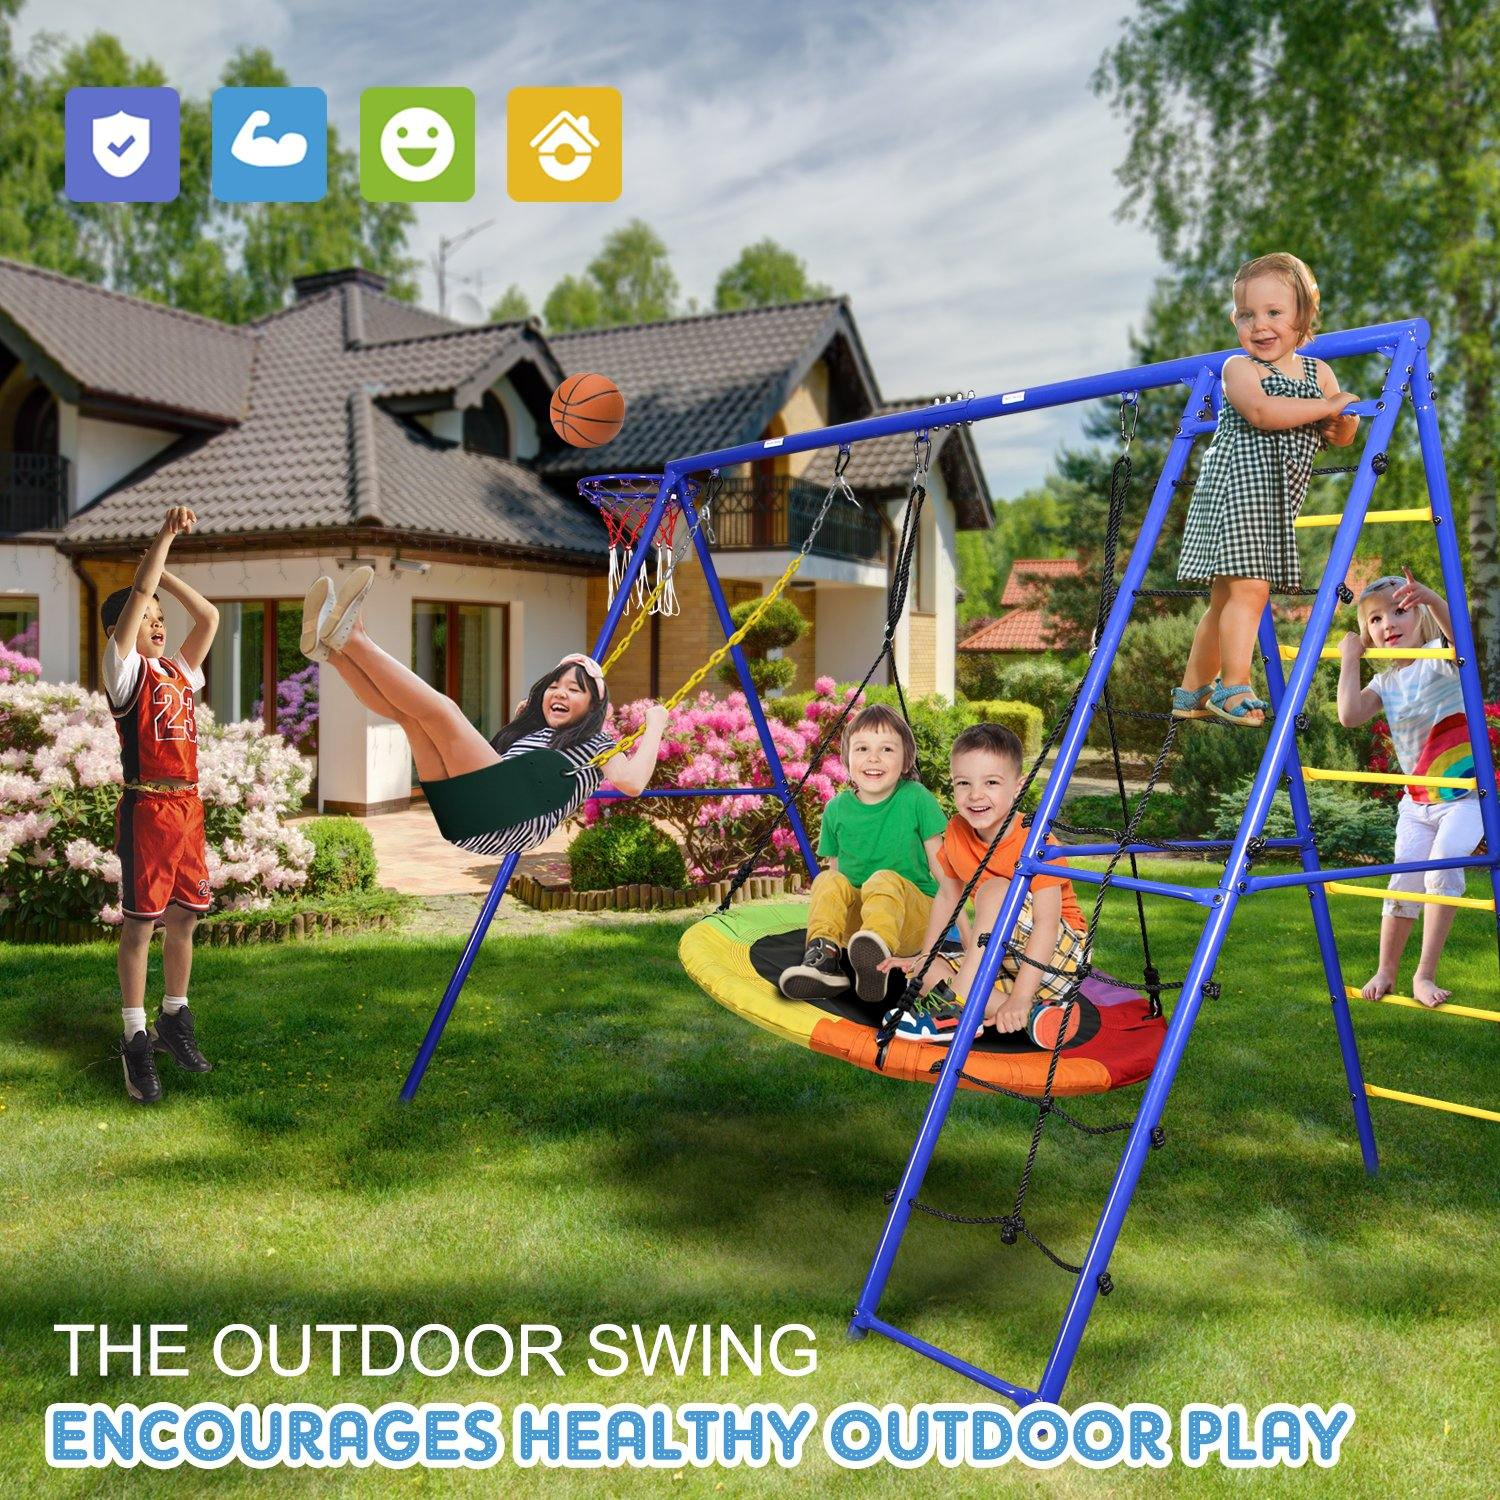 Swing Set: Make Your Yard a Playground for Kids